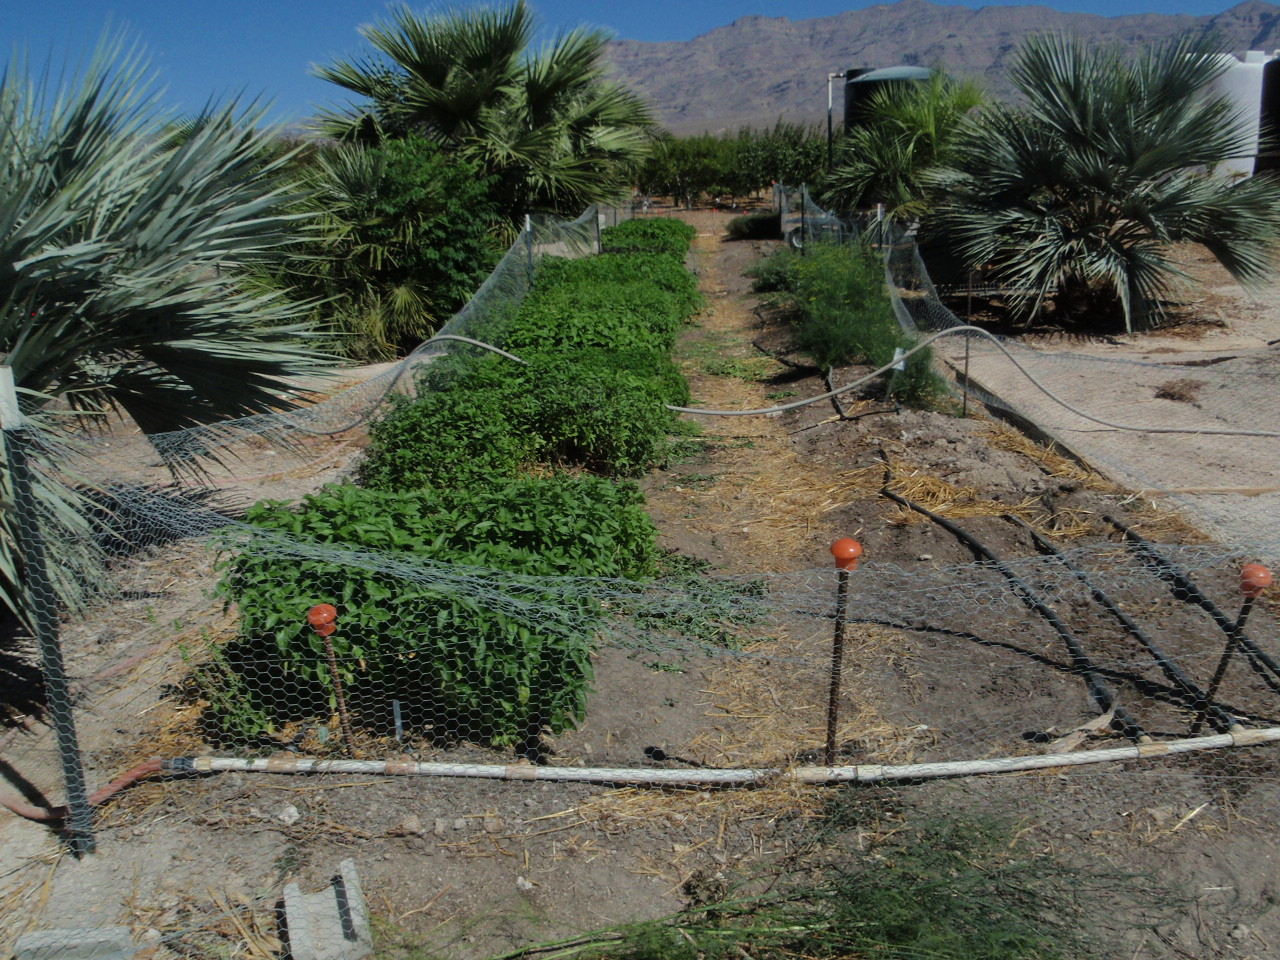 Xtremehorticulture Of The Desert 09 August 2015